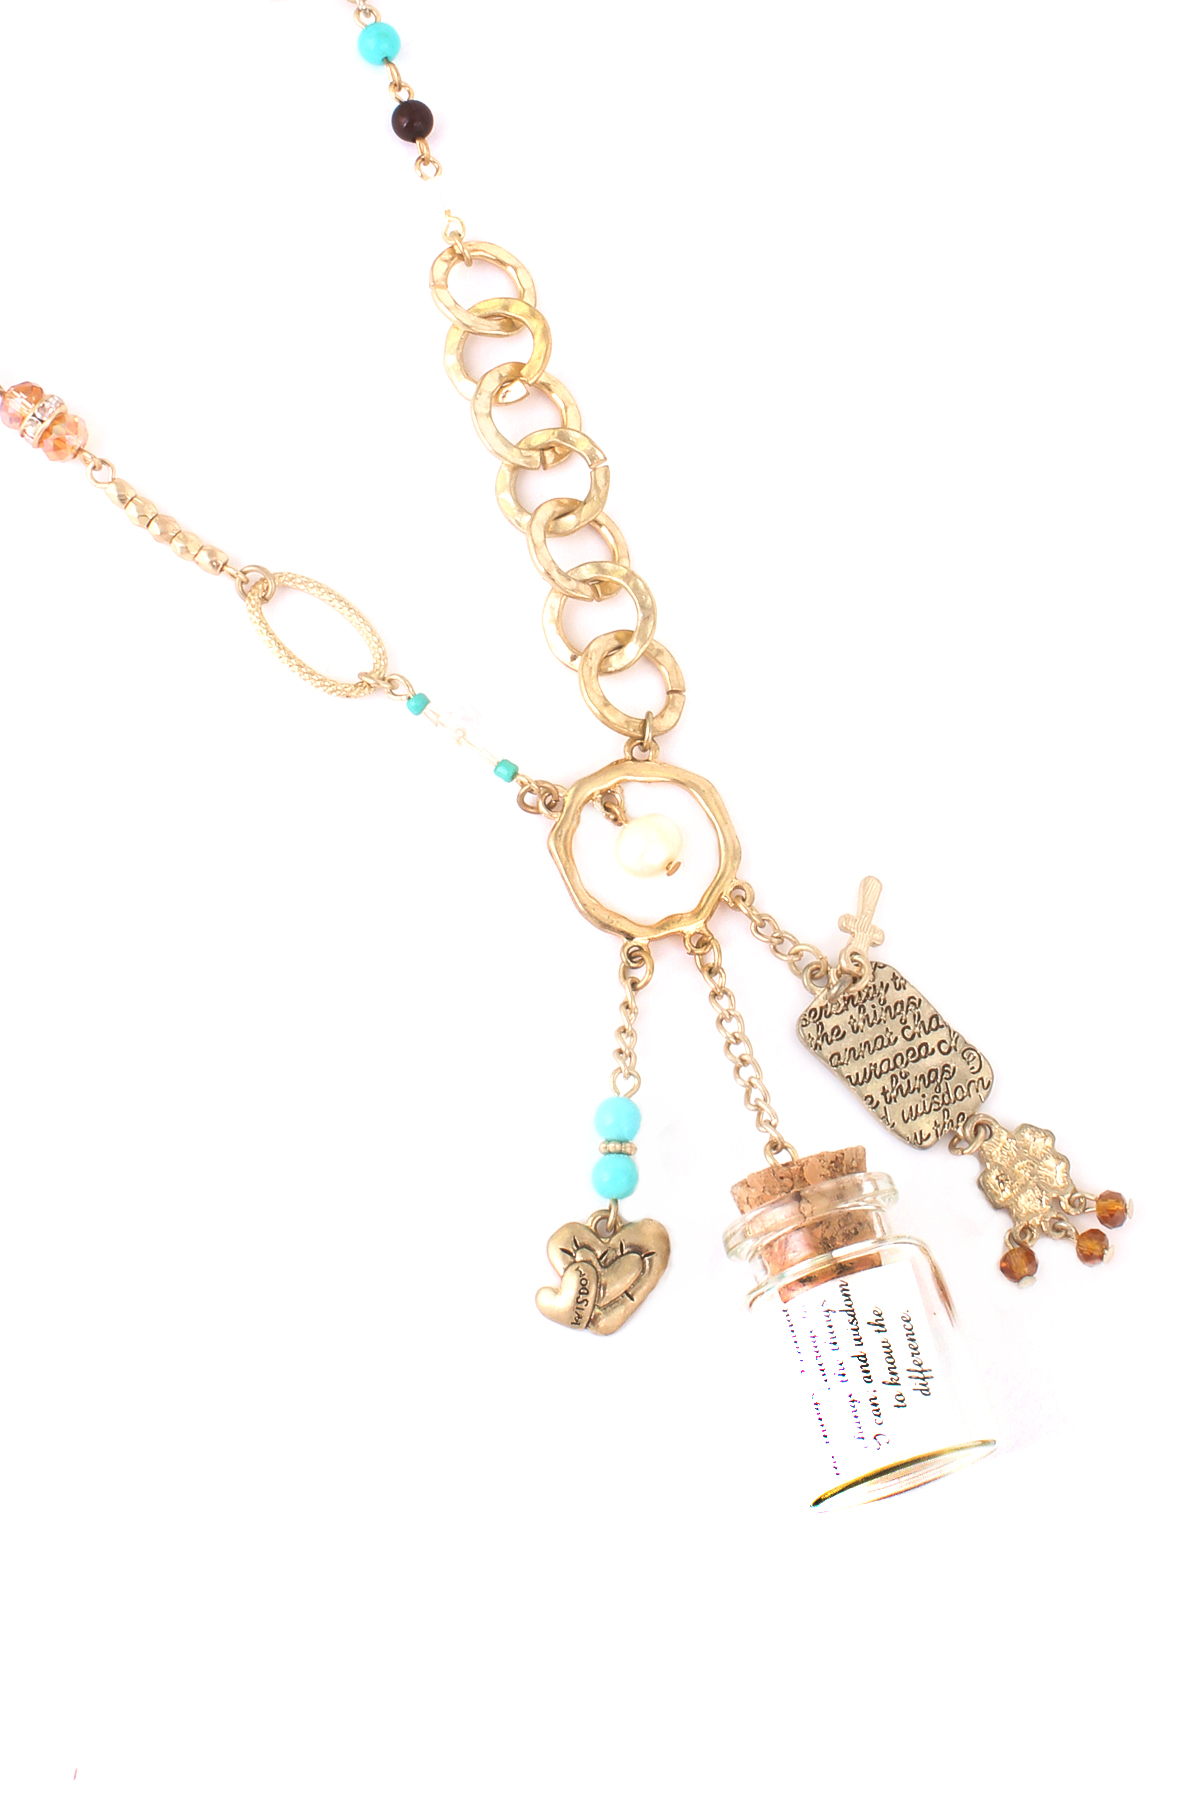 pendant sam serenity set img moon products prayer stamped necklace